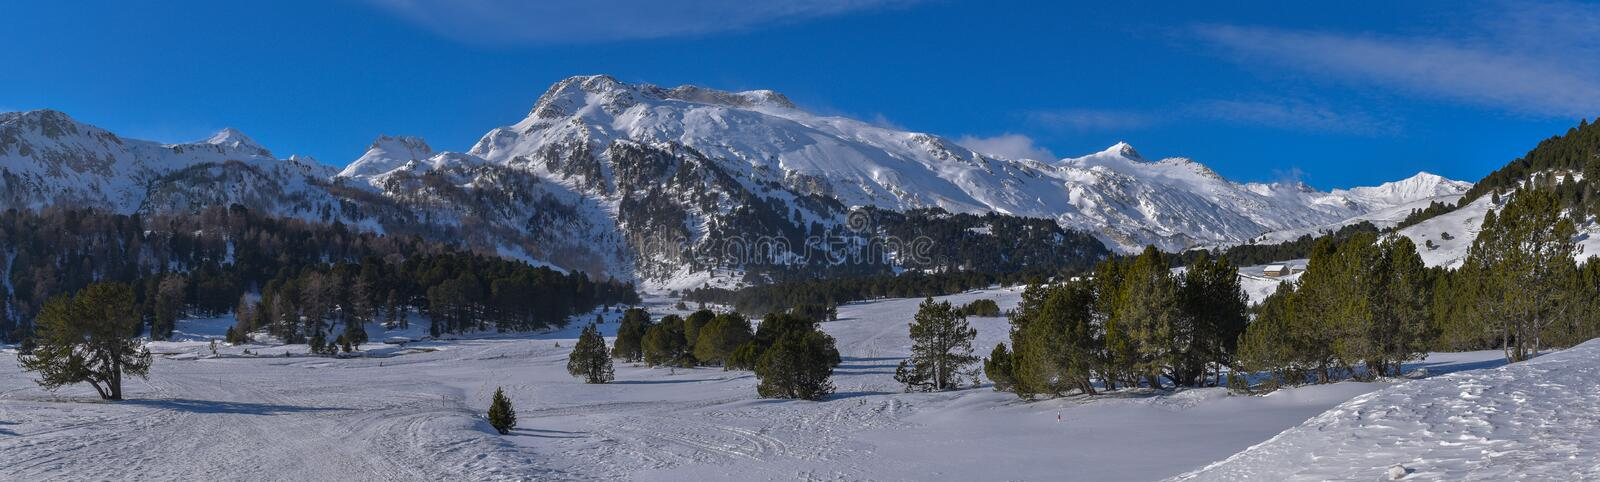 High mountain panorama in winter with snow, pine trees and blue sky stock images